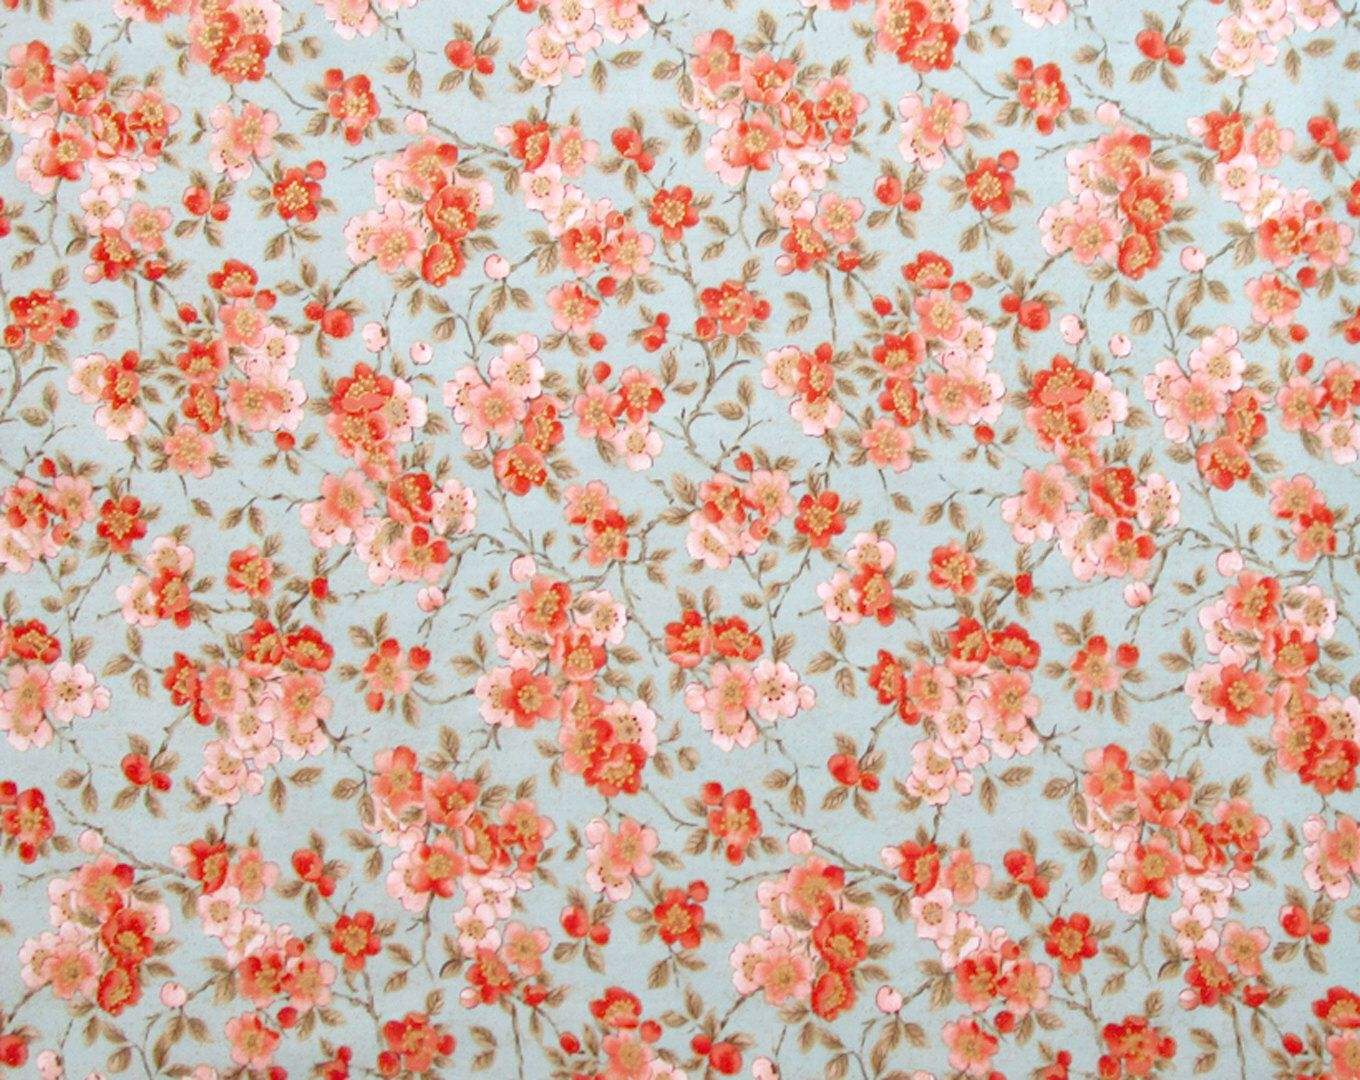 Flowers Floral Fabric - Coral Pink Orange Teal Blue Metallic Gold ...